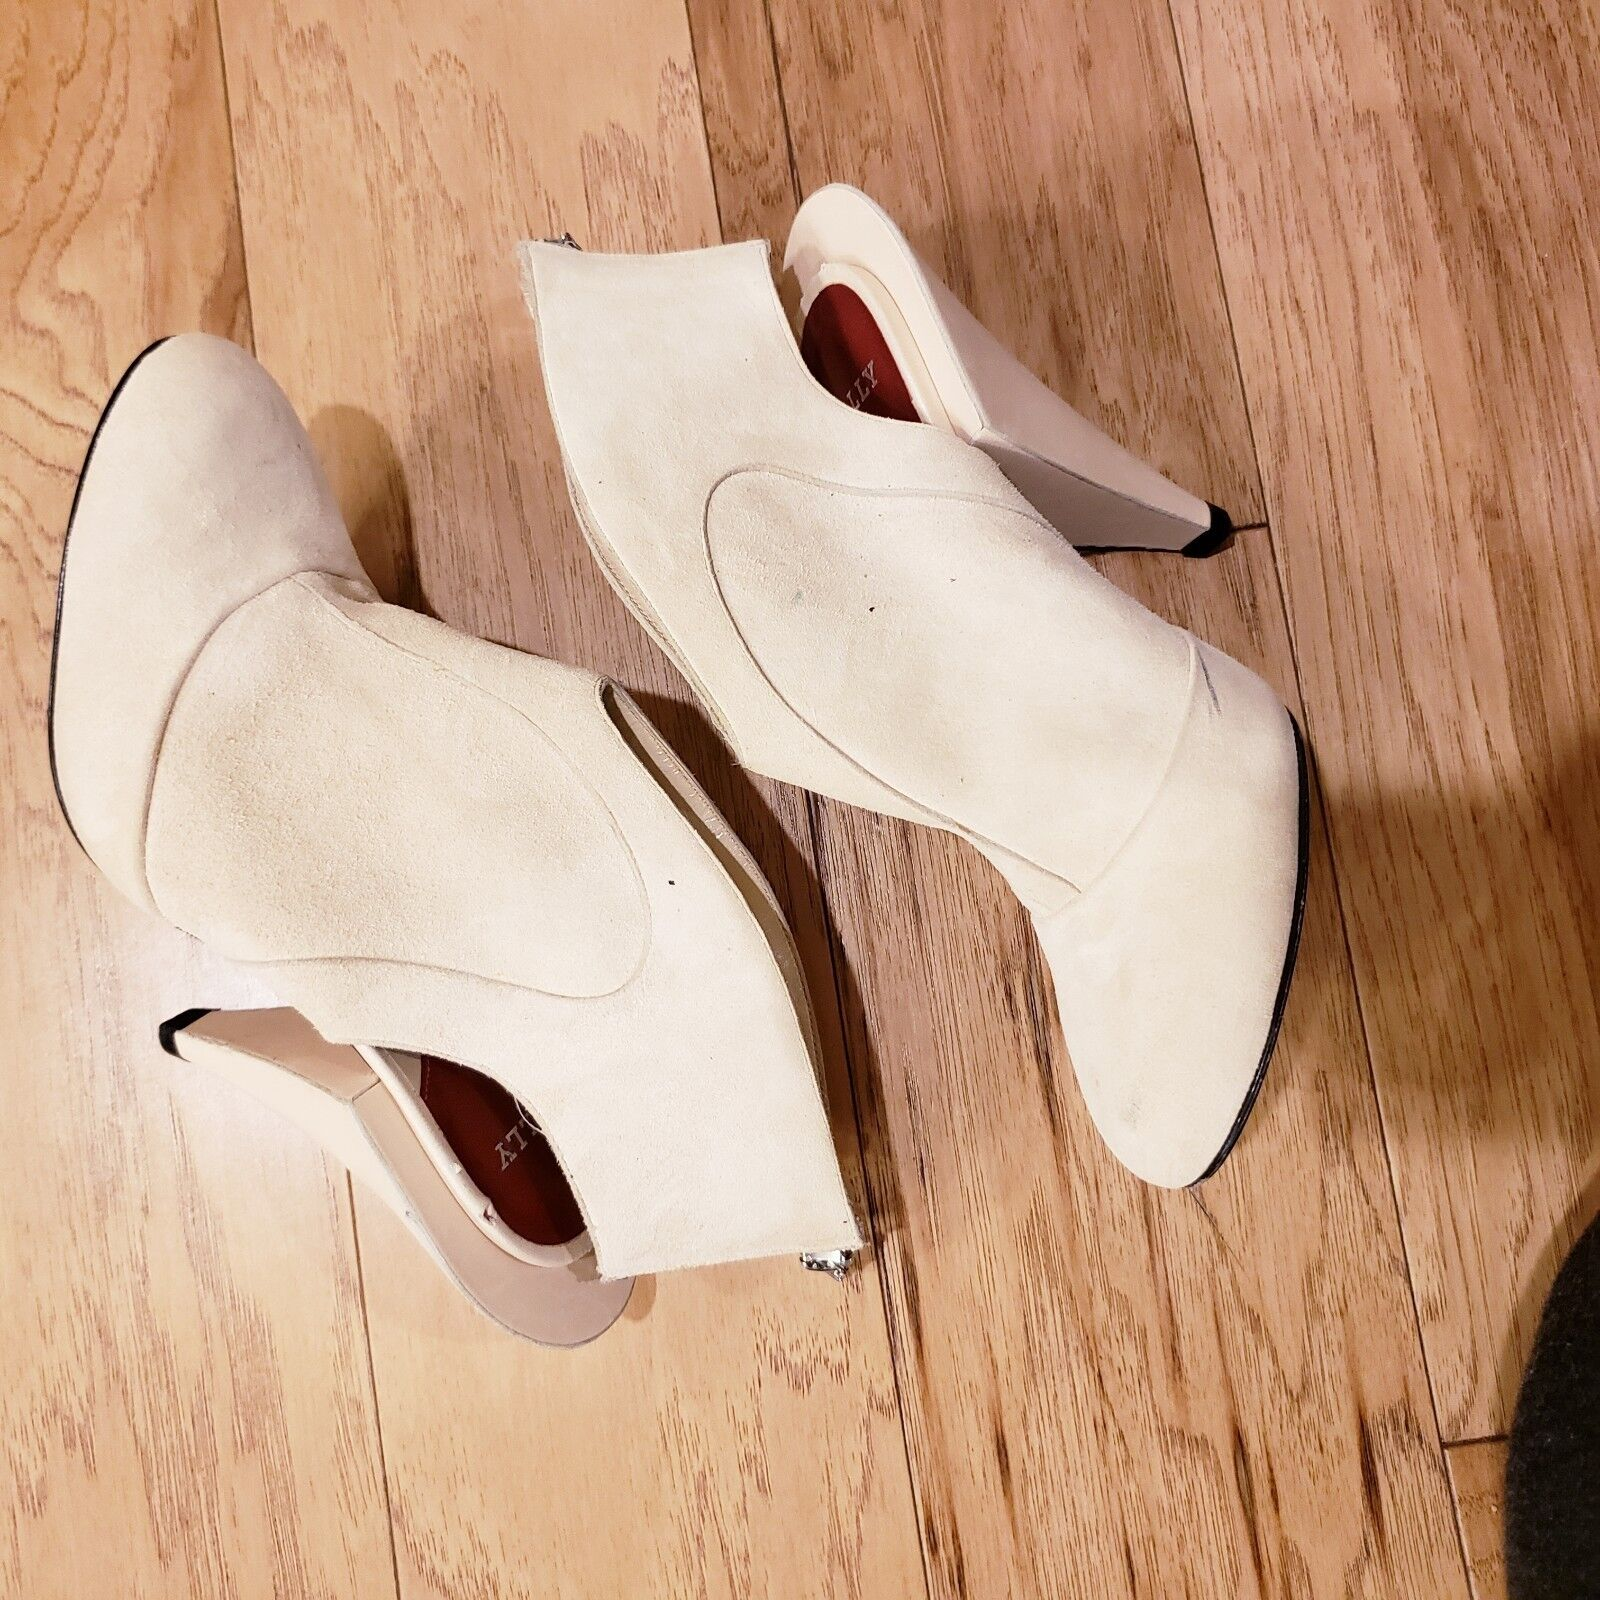 Bally Suede Sling Back avvioie with Cone Heal - Wouomo Dimensione 6.5 Cream